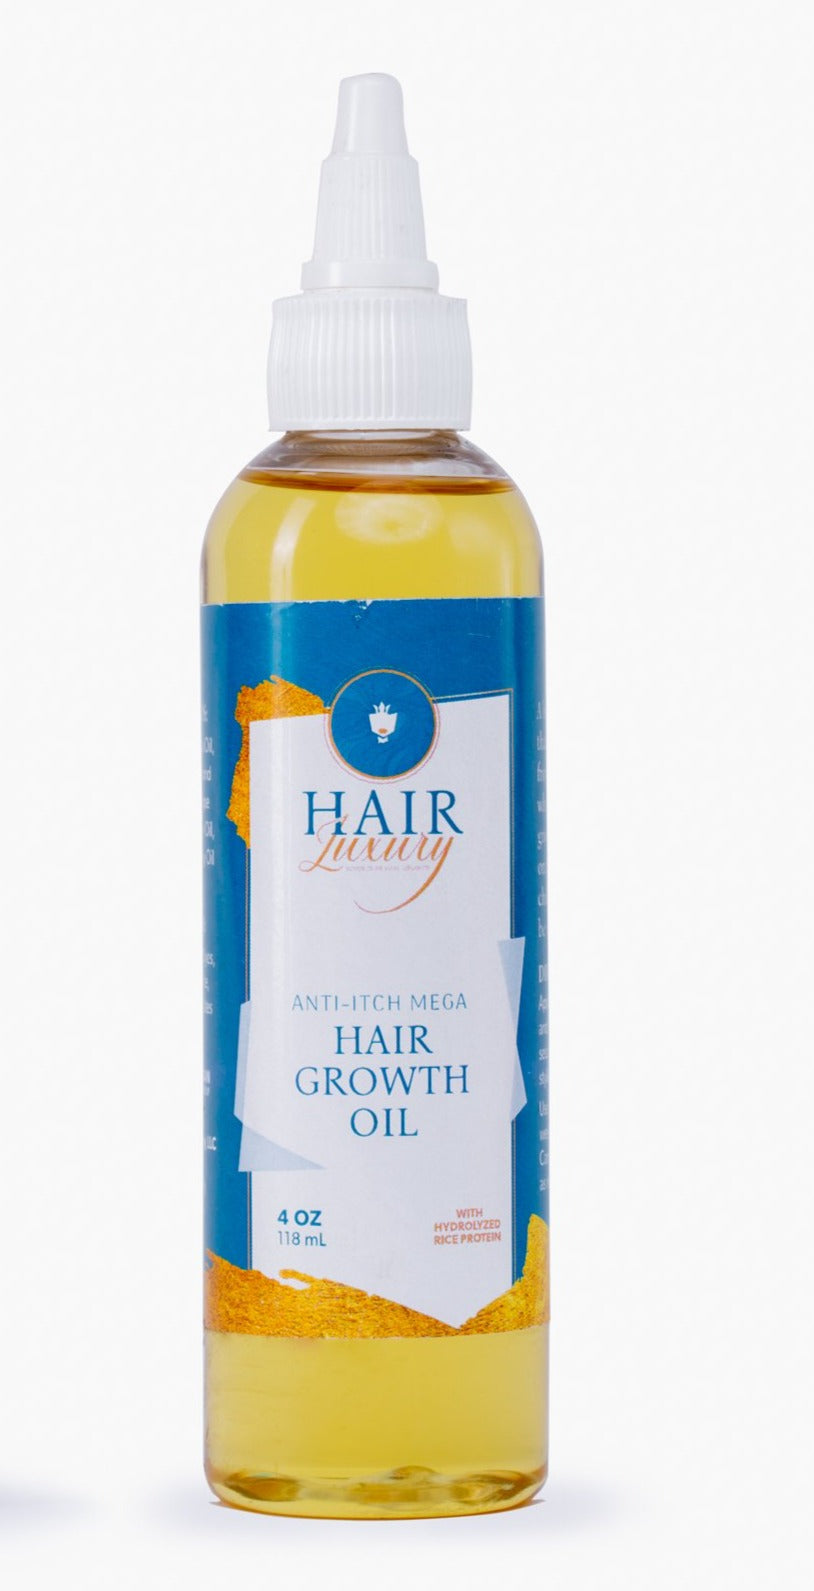 Hair Luxury Anti Itch Mega Hair Growth Oil